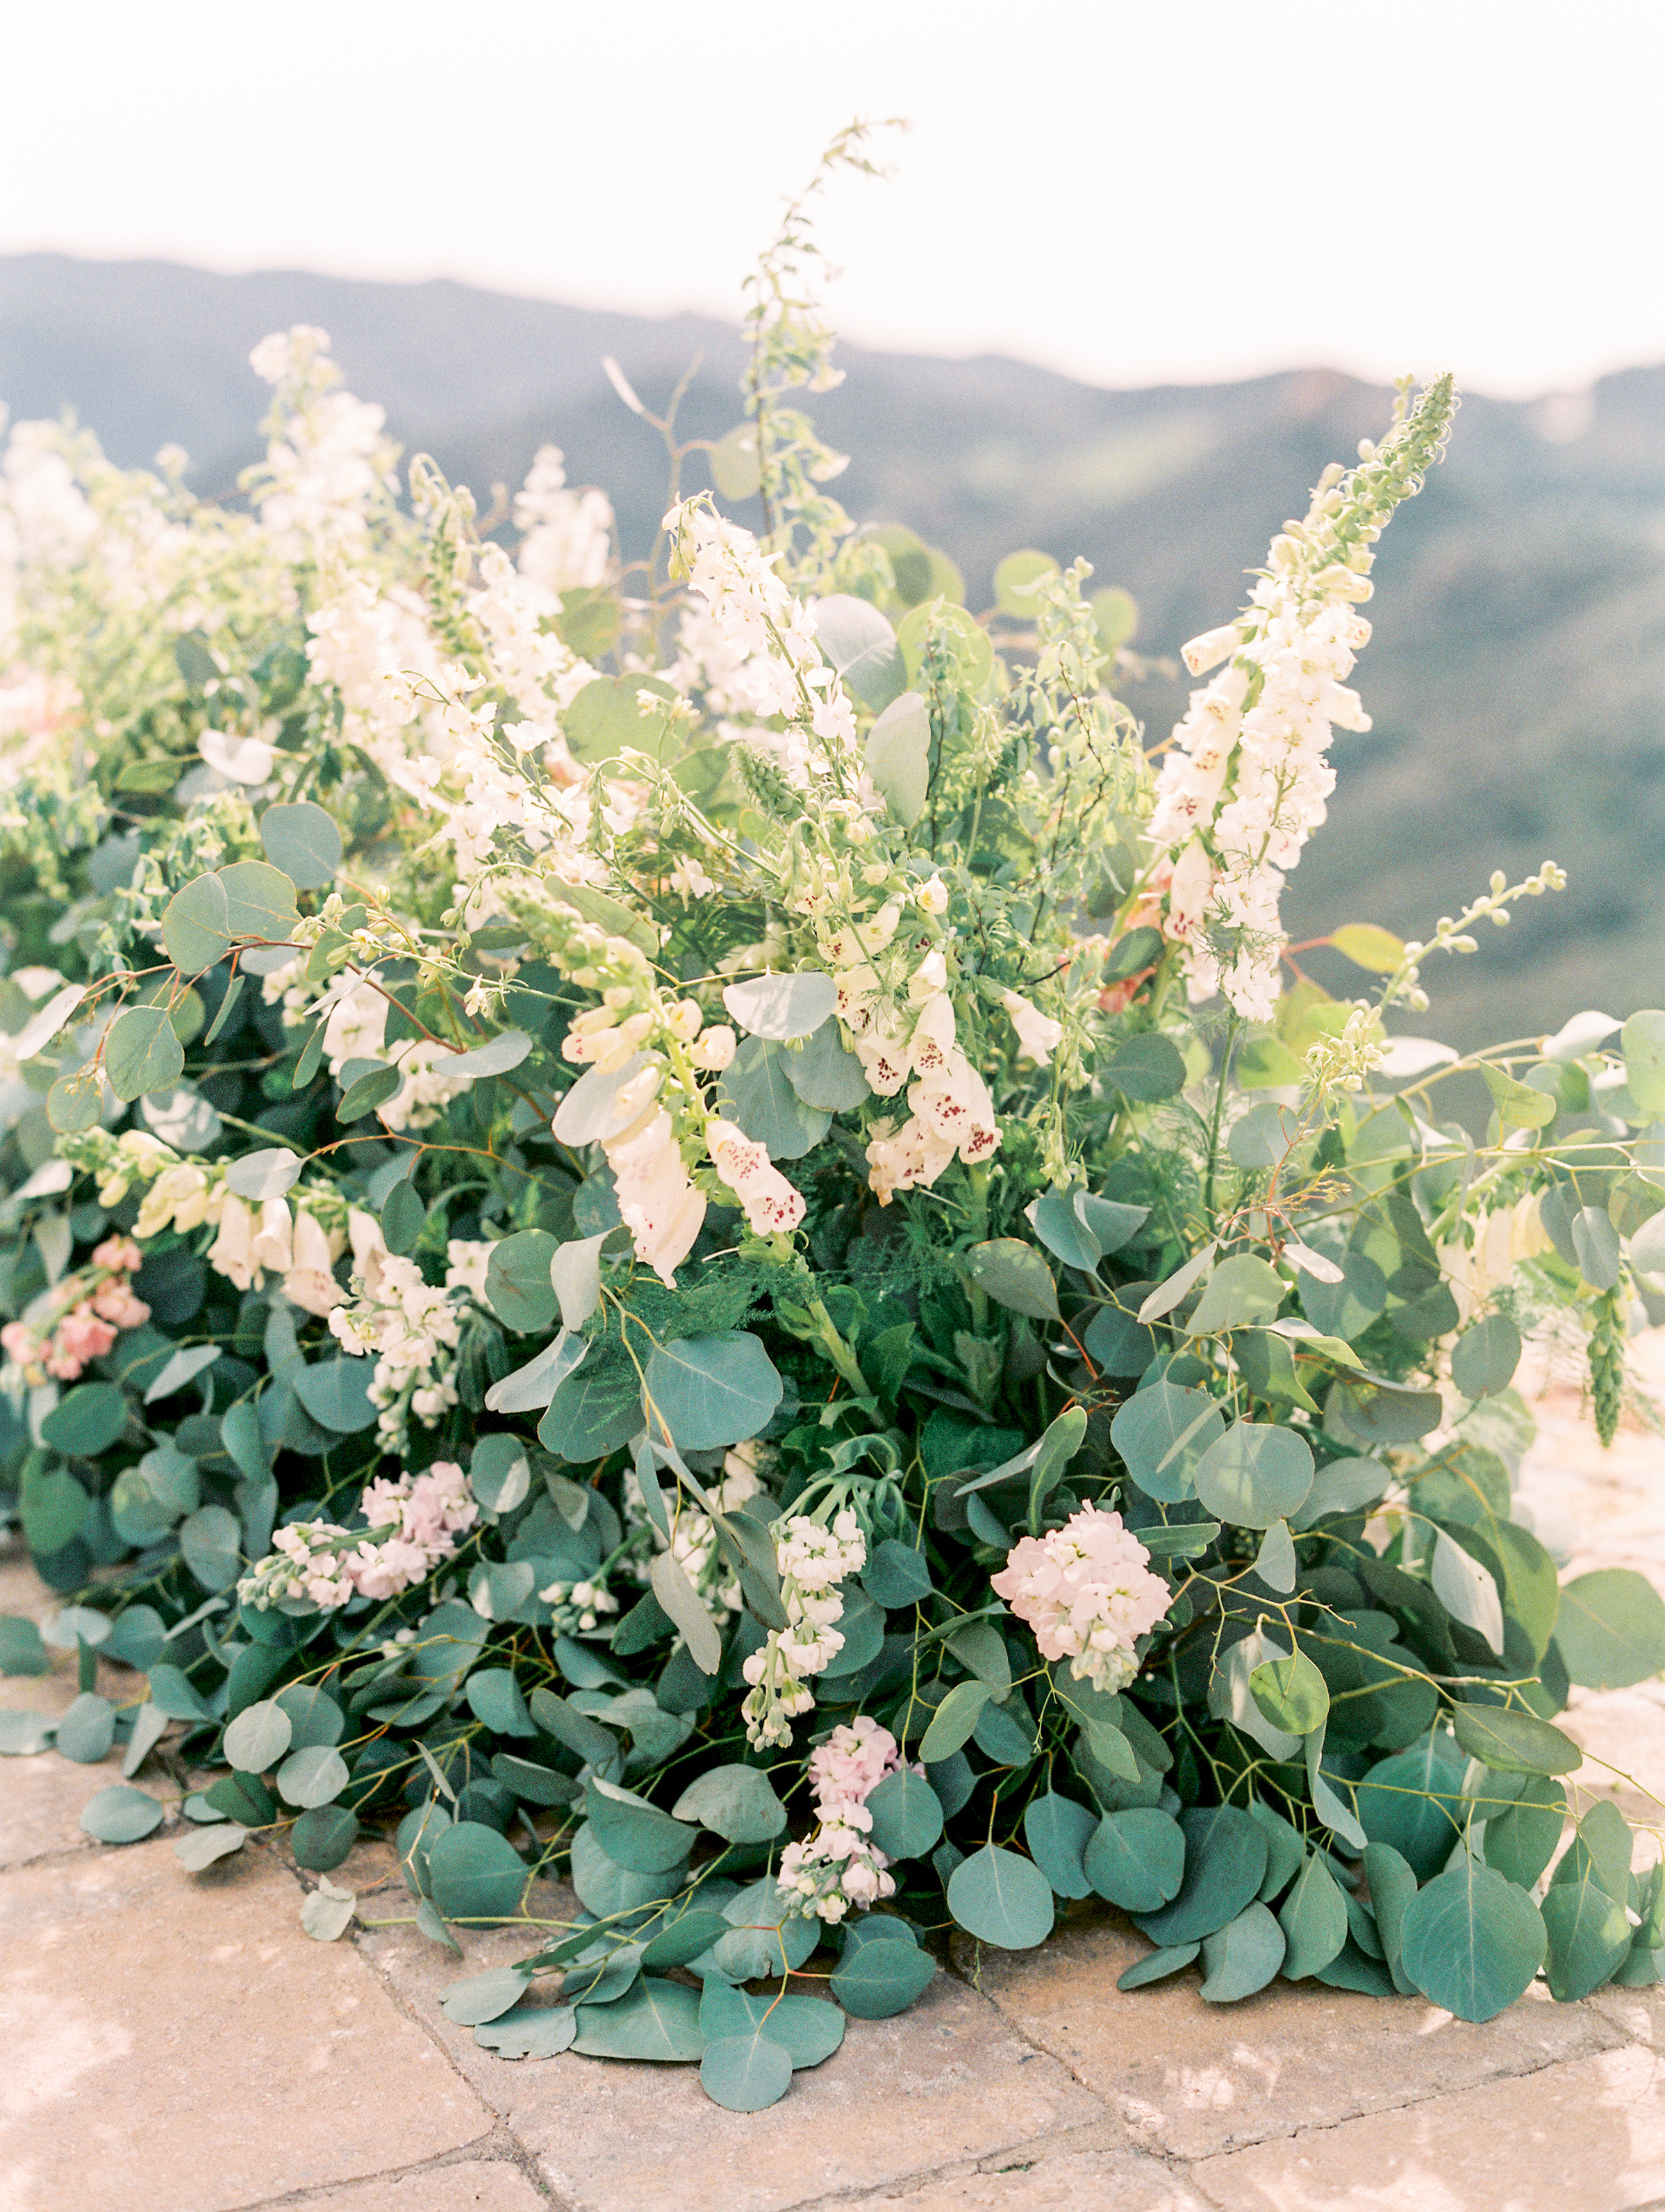 Spring Wedding at Romantic Hilltop Vineyard Malibu Rocky Oaks Sally Pinera Finding Flora Ceremony Circle Installation So Happi Together